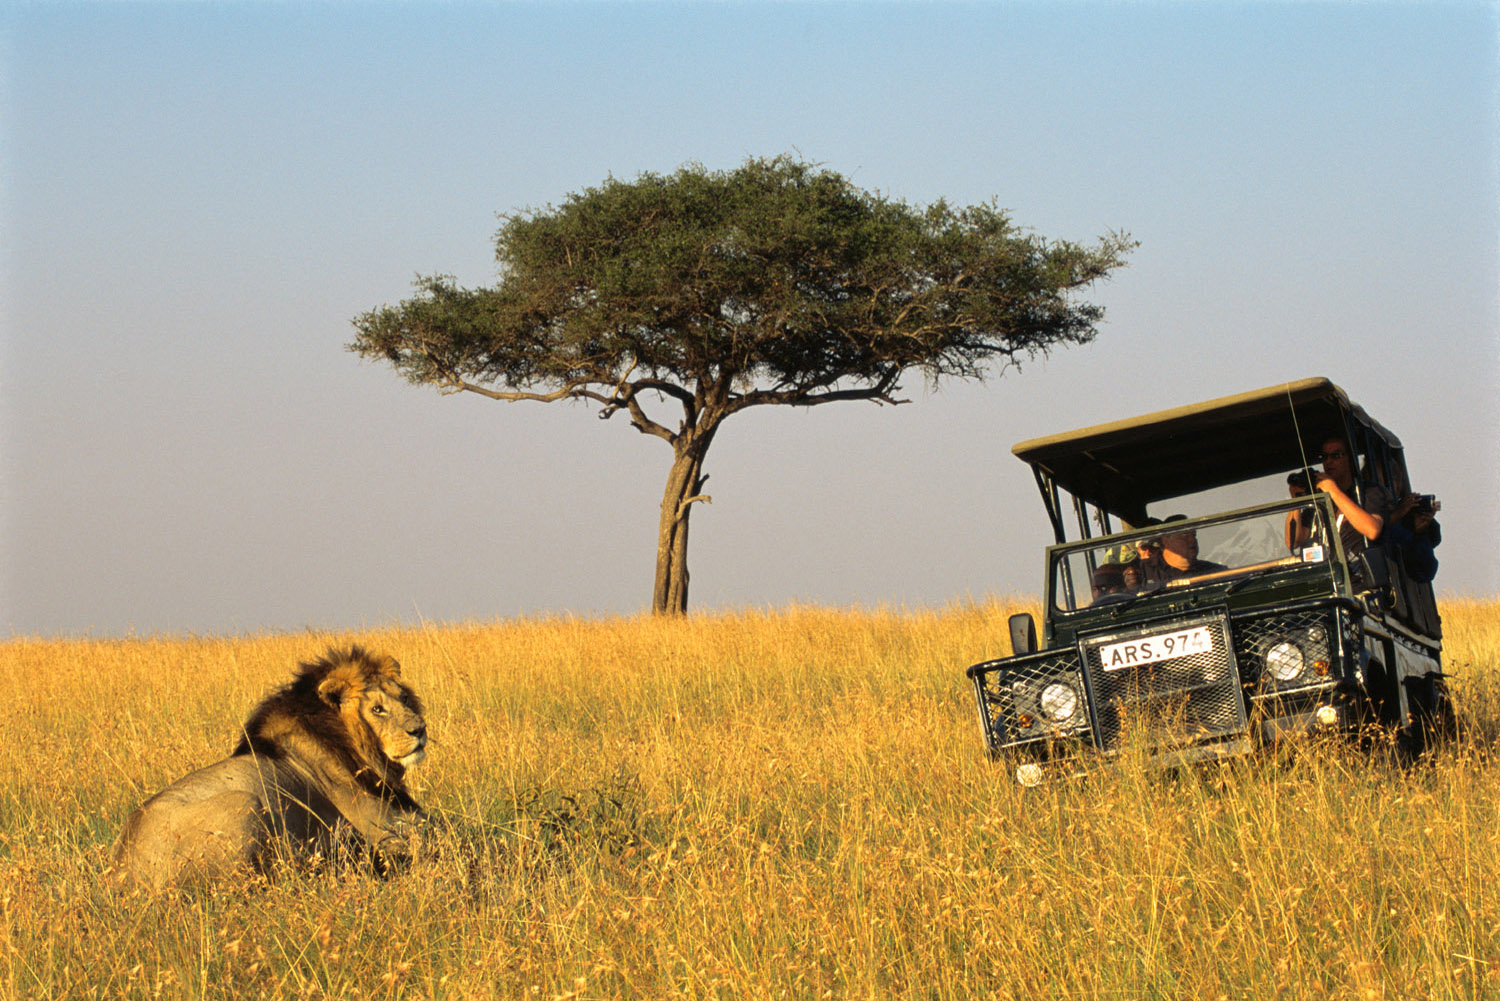 Tourists in Land Rover watching lion, Masai Mara National Reserve, Kenya